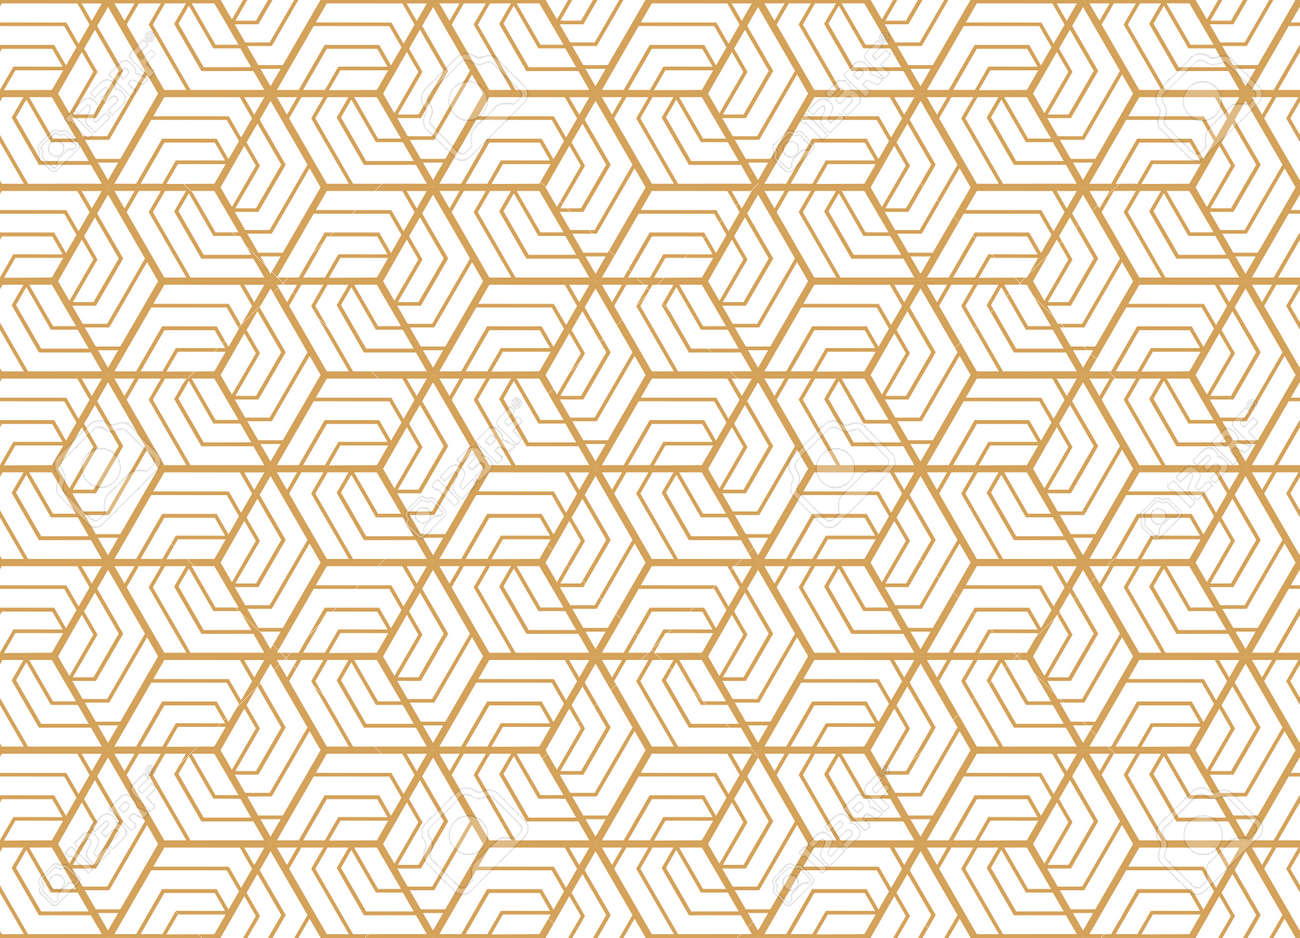 Abstract geometric pattern with stripes, lines. Seamless vector background. White and gold ornament. Simple lattice graphic design - 169878870